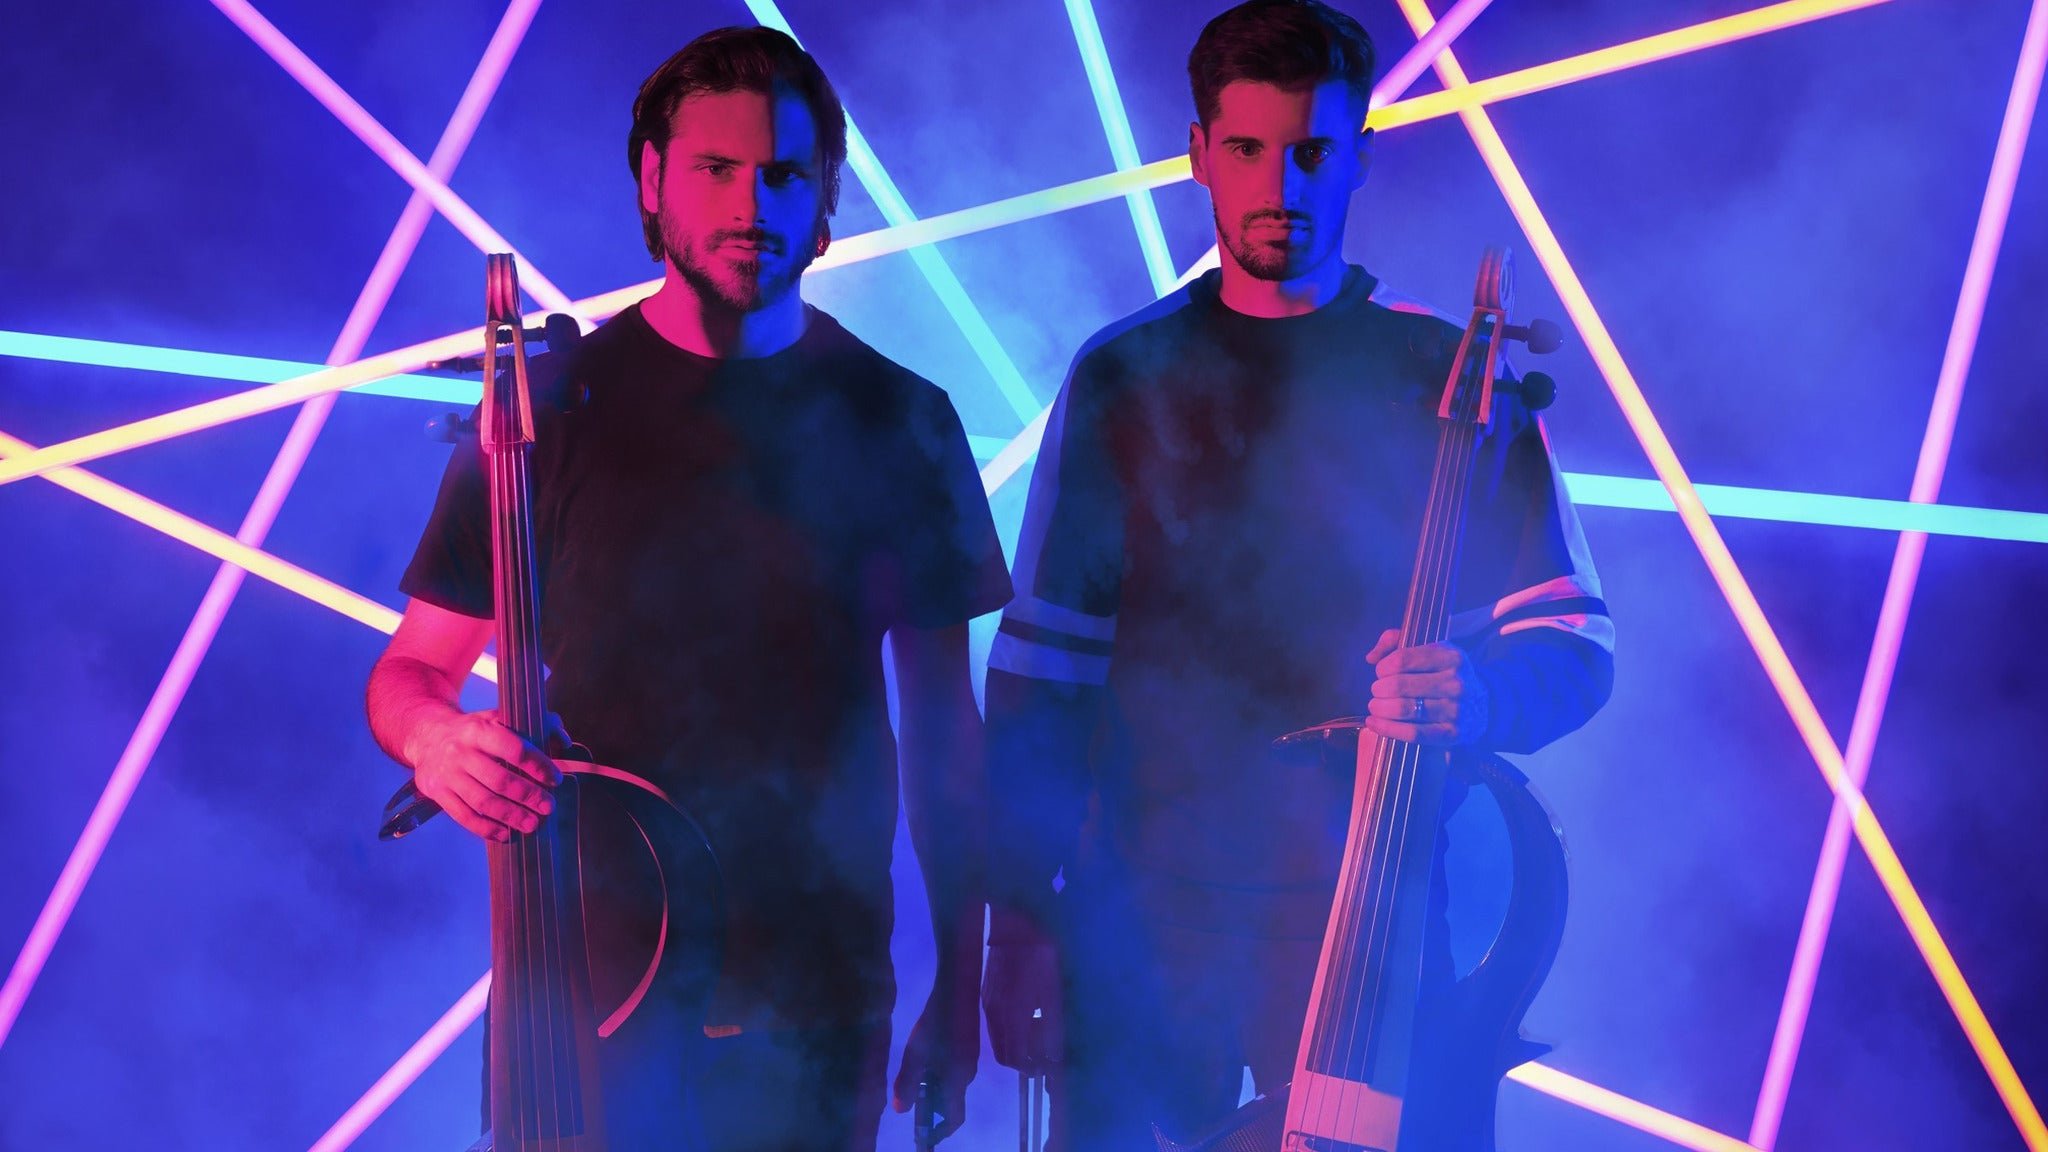 2Cellos - Let There Be Cello at Webster Bank Arena